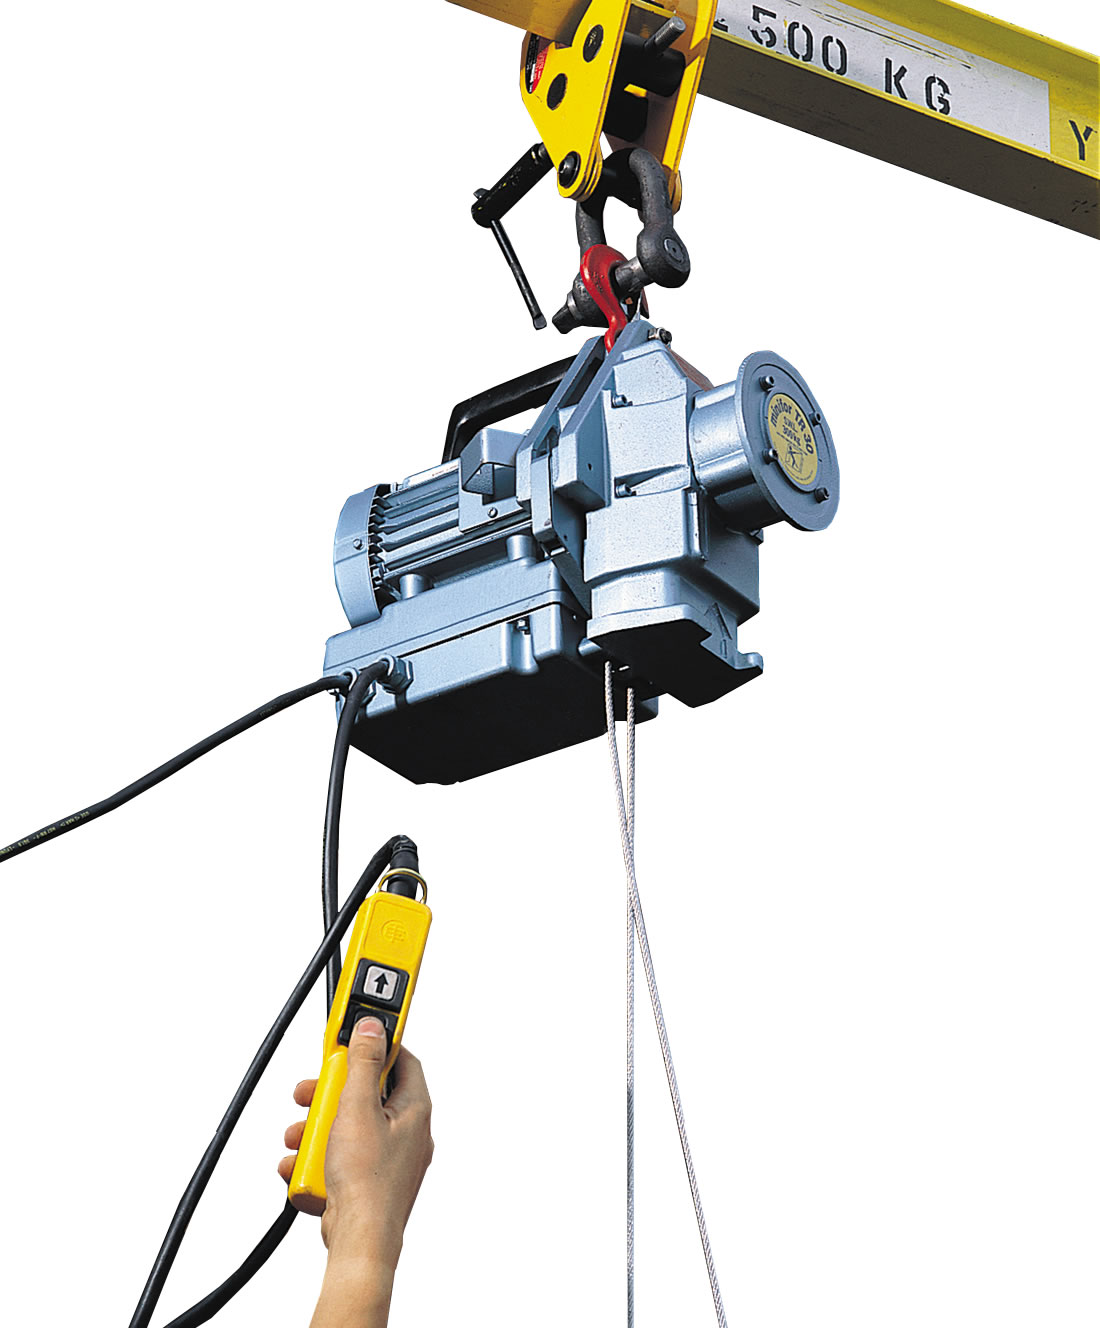 Minifor Hoist Tr30 with Remote